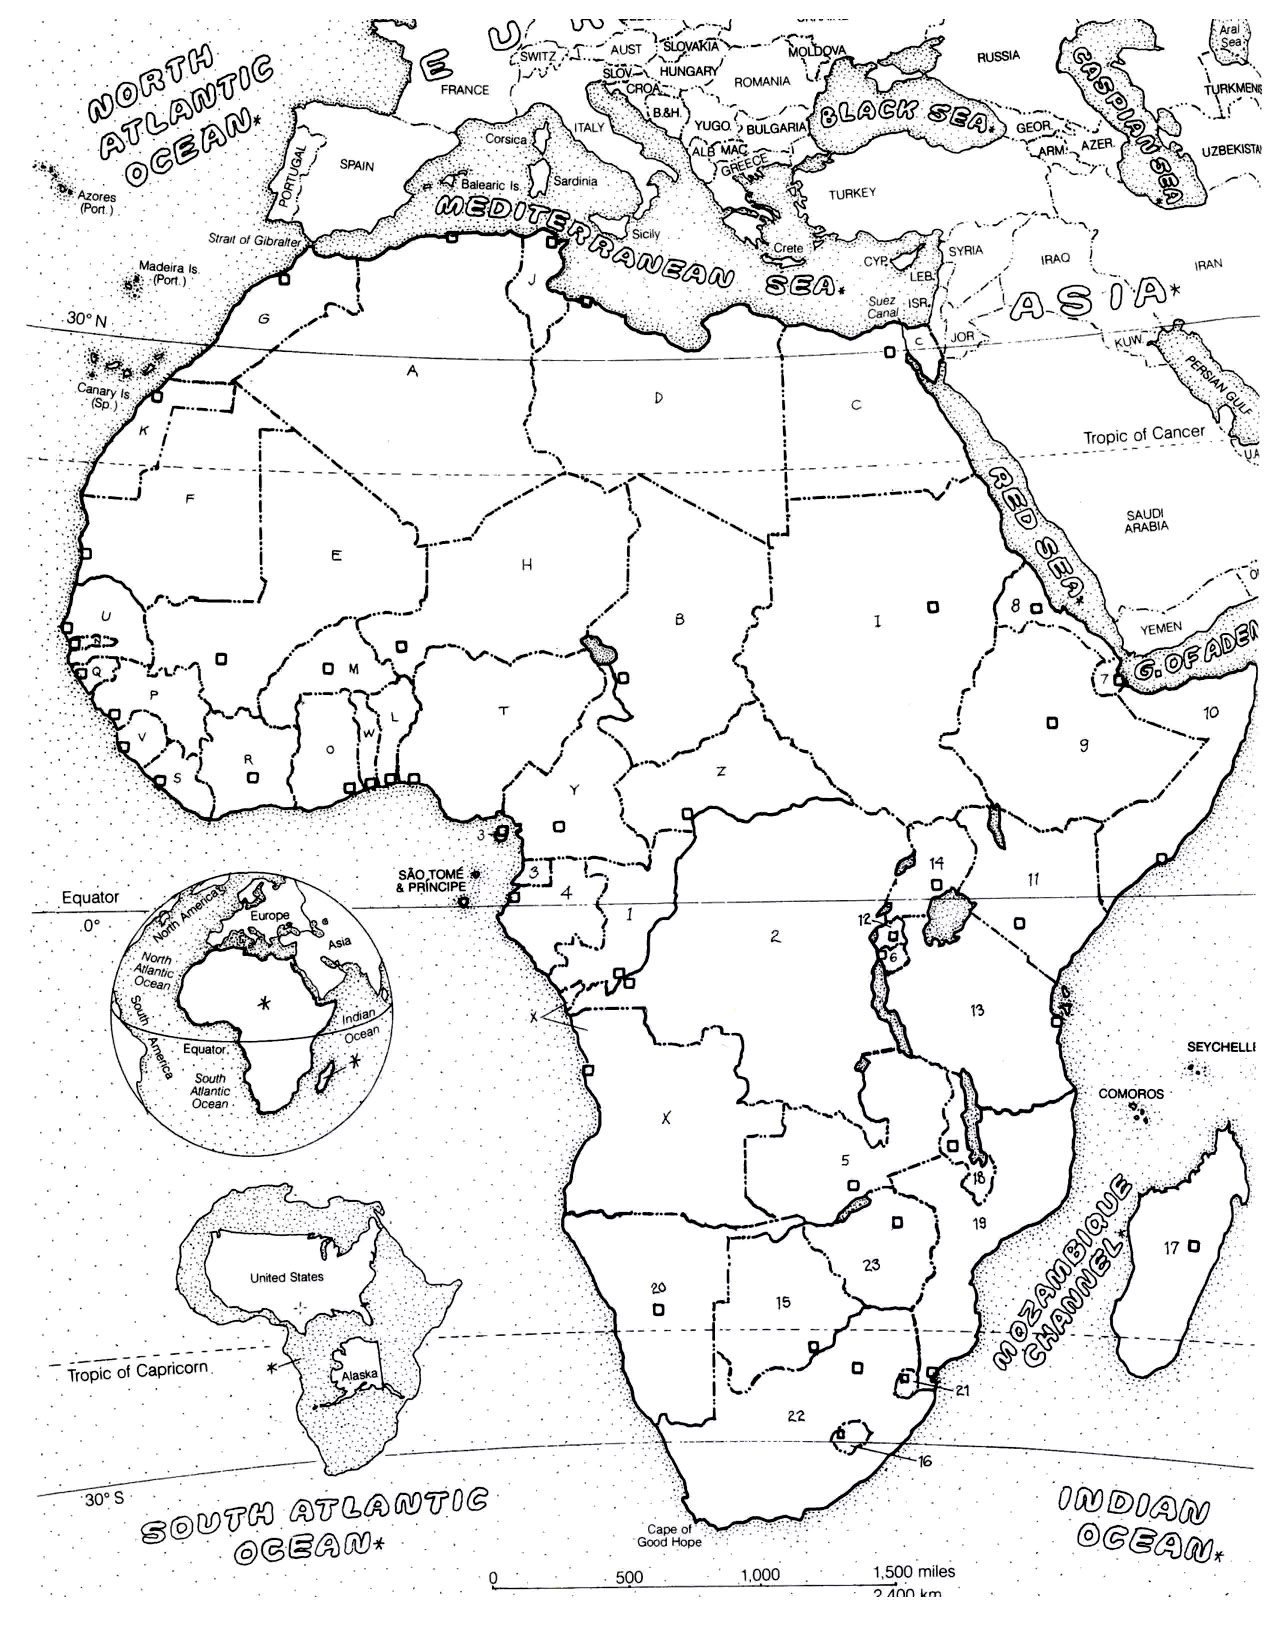 Clip Art Map Of Africa Coloring Page africa coloring pages for adults adult map the of african continentfrom gallery africa